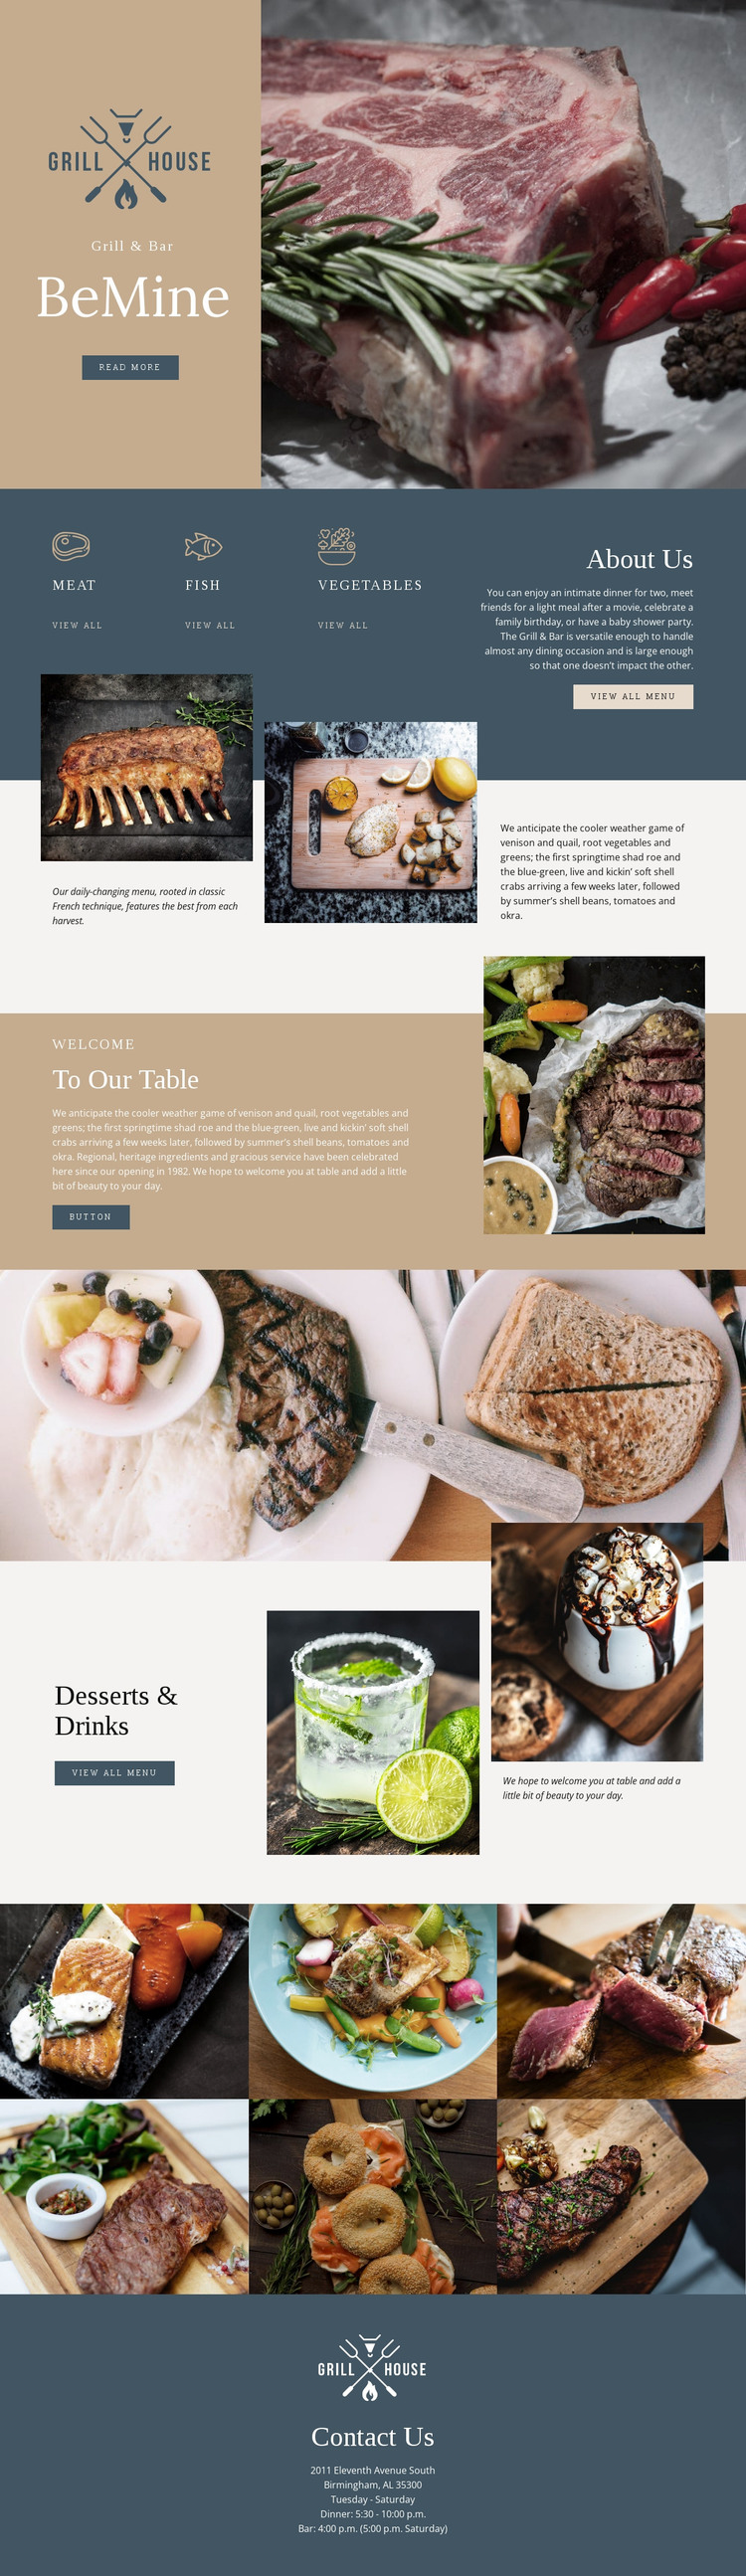 Finest Grill House Restaurant Wordpress Theme